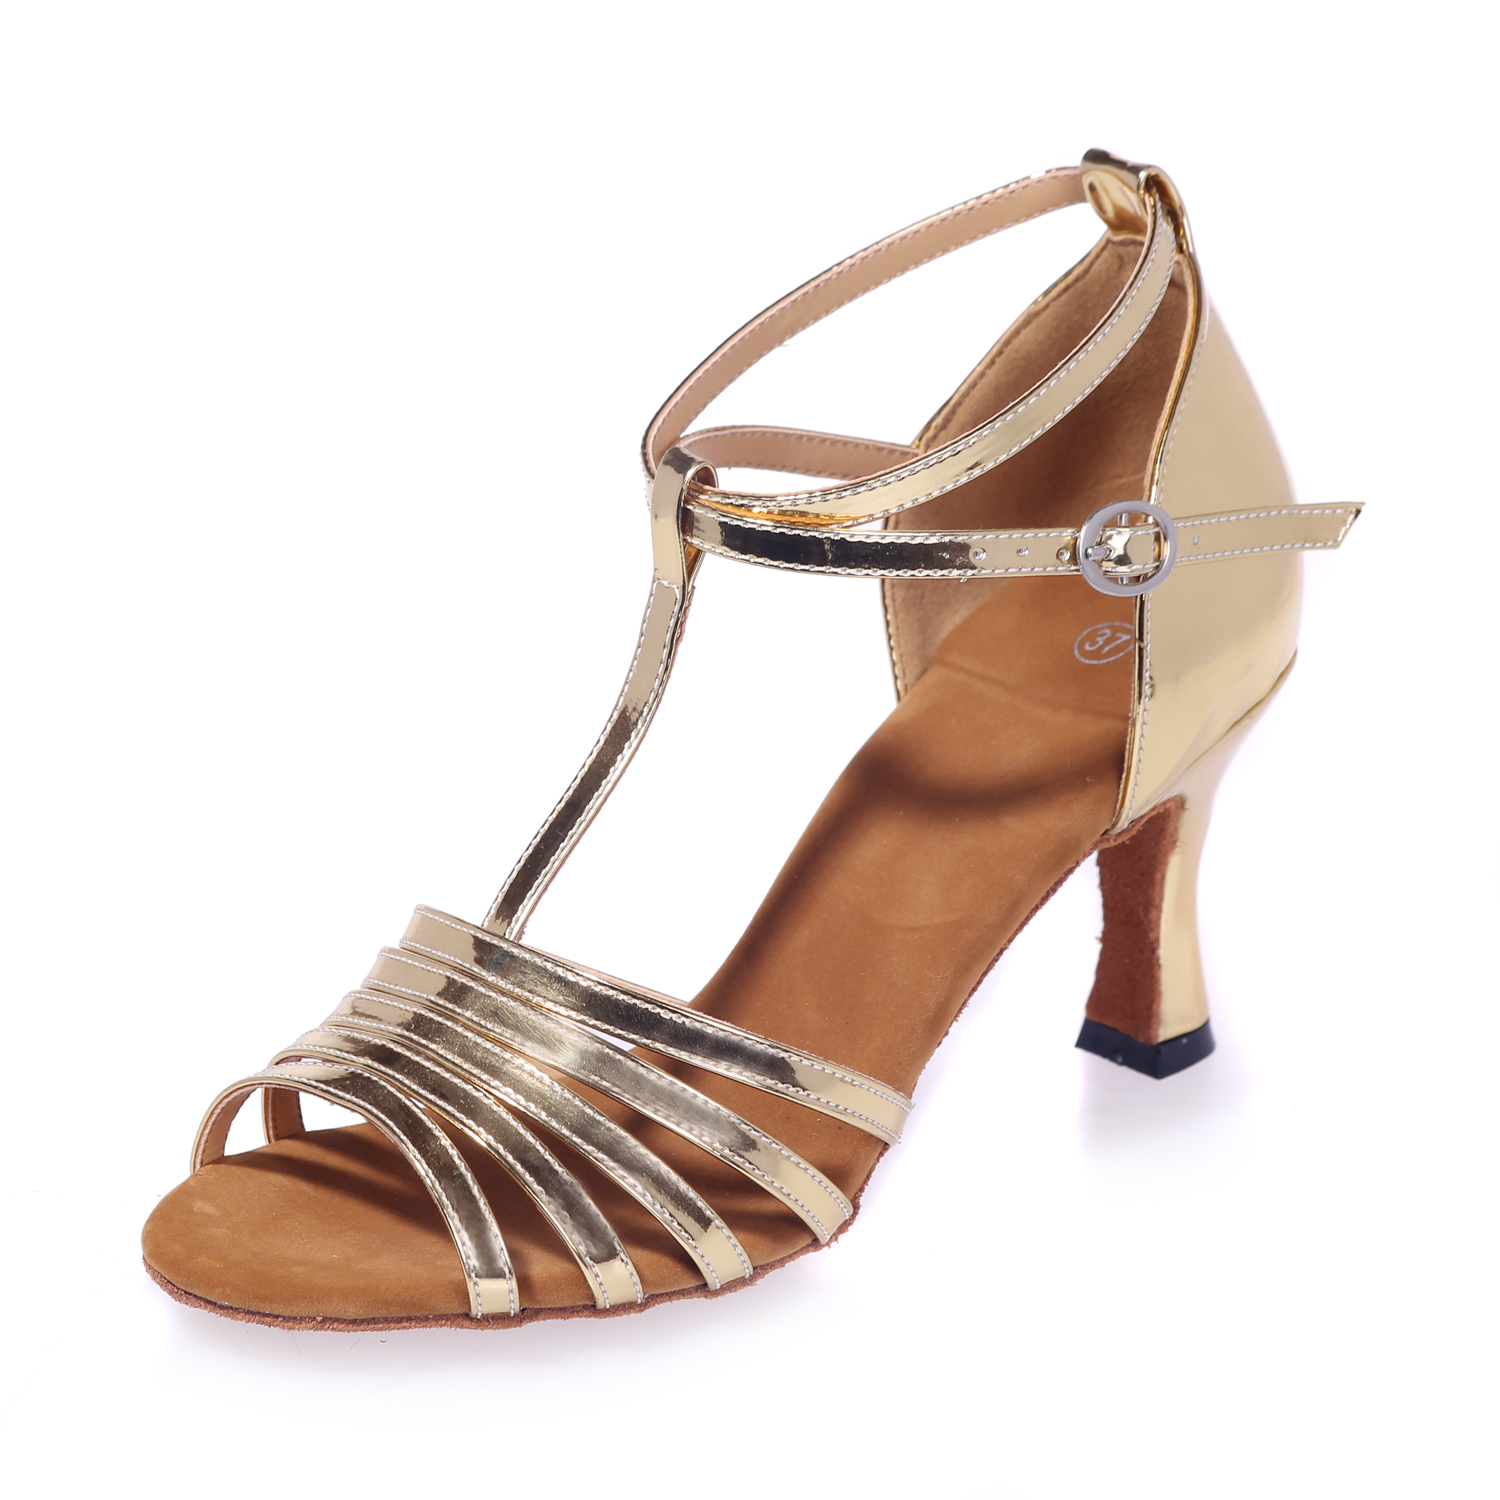 Export dance sandals metal feeling gold silver strap ankle strap leather soft sole Latin Womens shoes chachasha